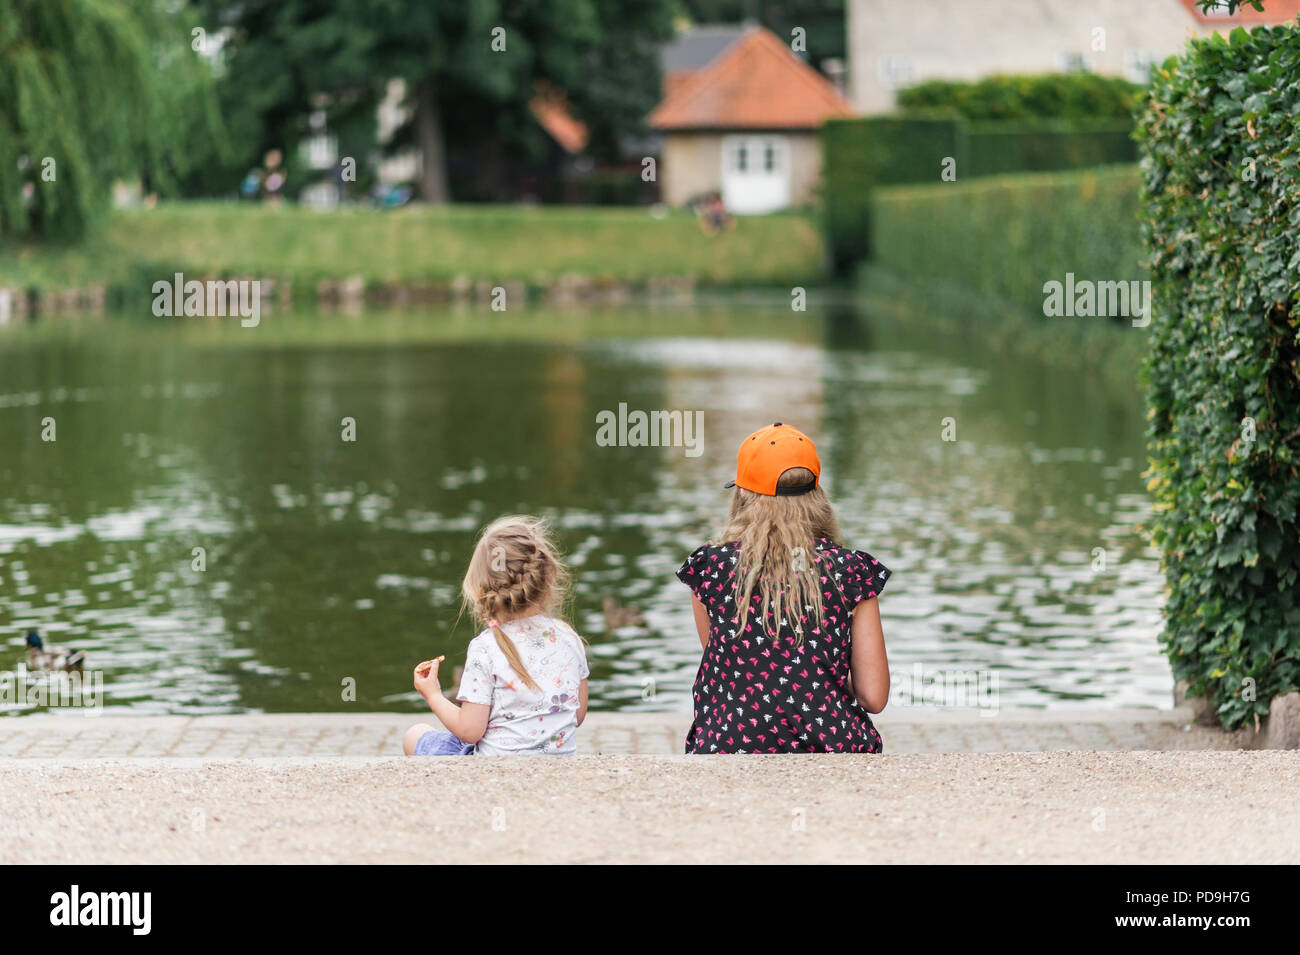 Young girls feeding birds by the city pond. Throwing bread to ducks. Pretty colorful dresses and skirts, long hair. - Stock Image